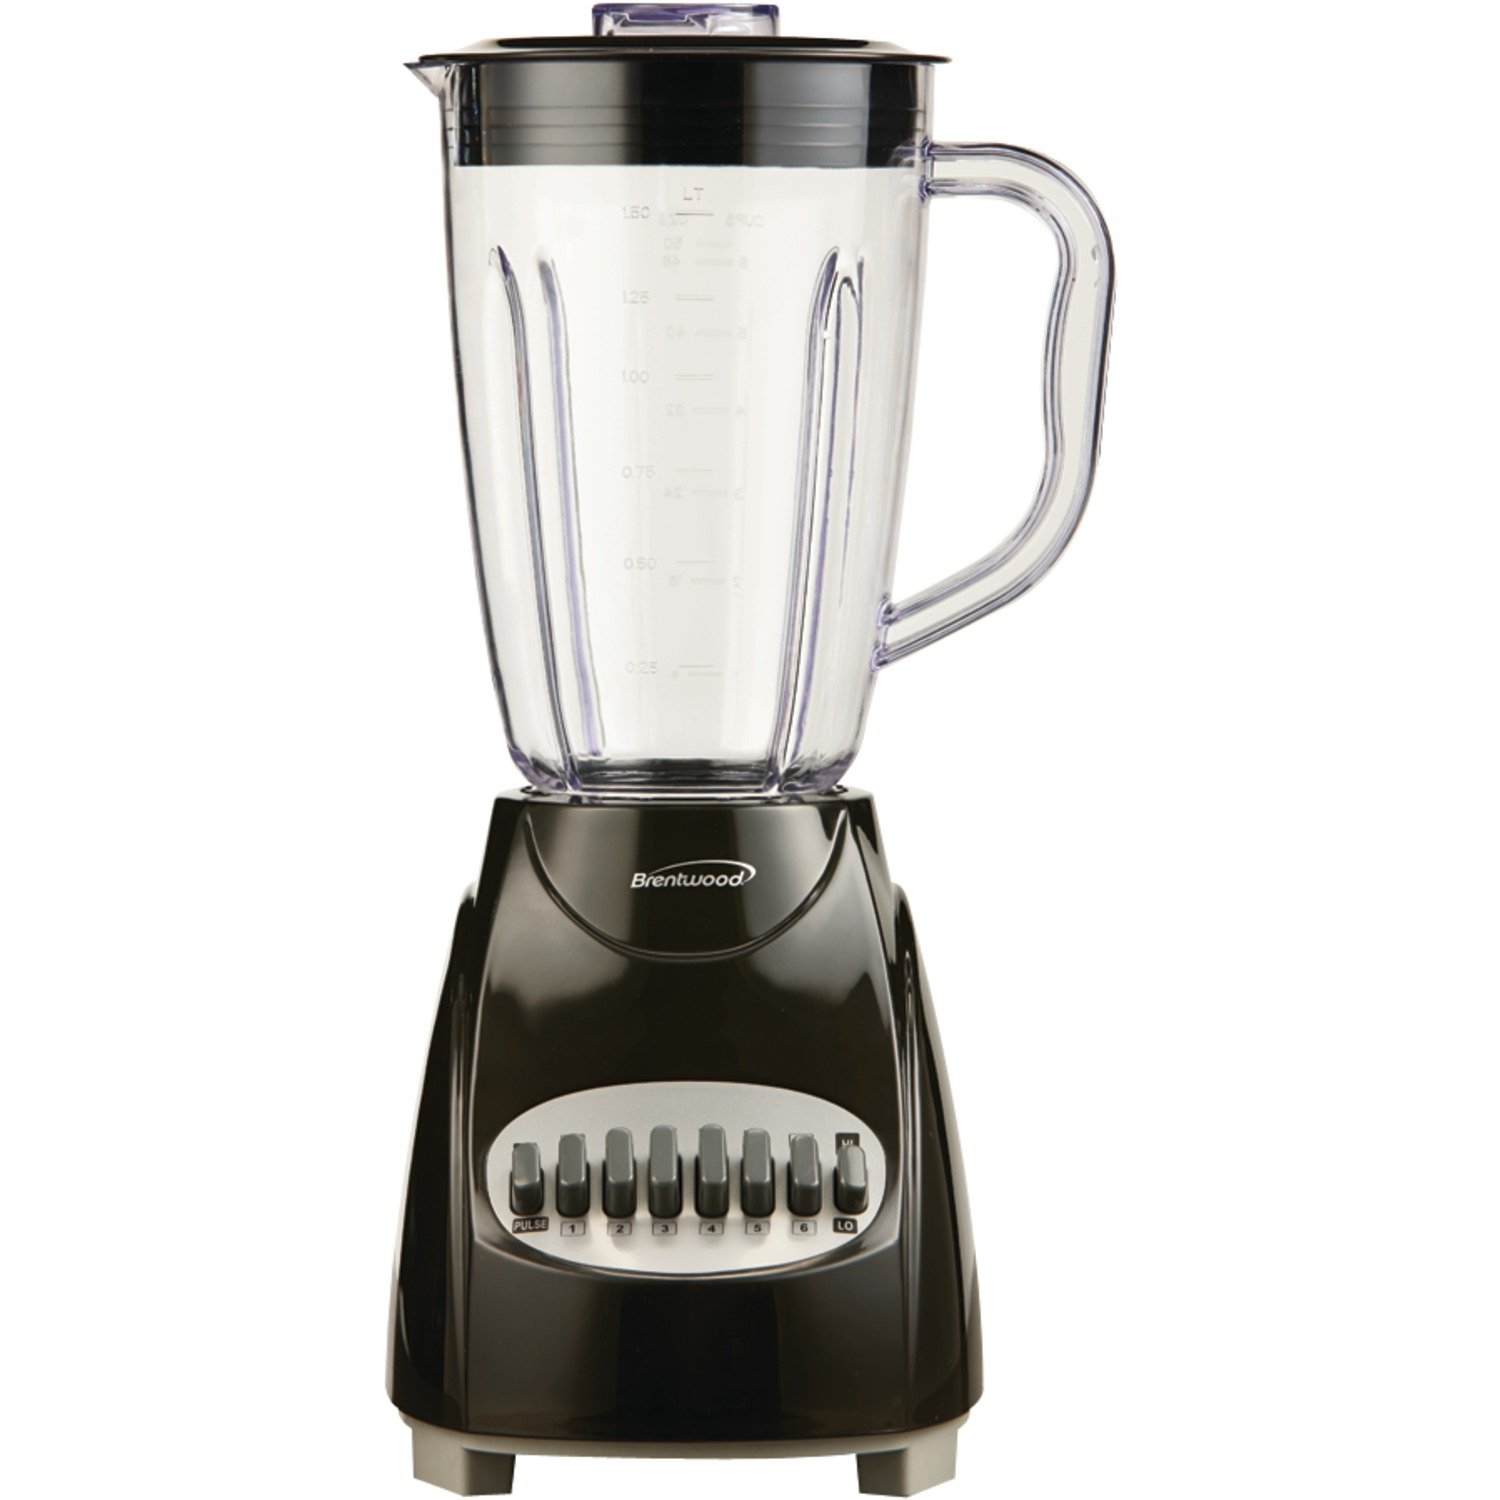 Amazon.com: Brentwood JB-220B Appliances 12-Speed Blender with ...